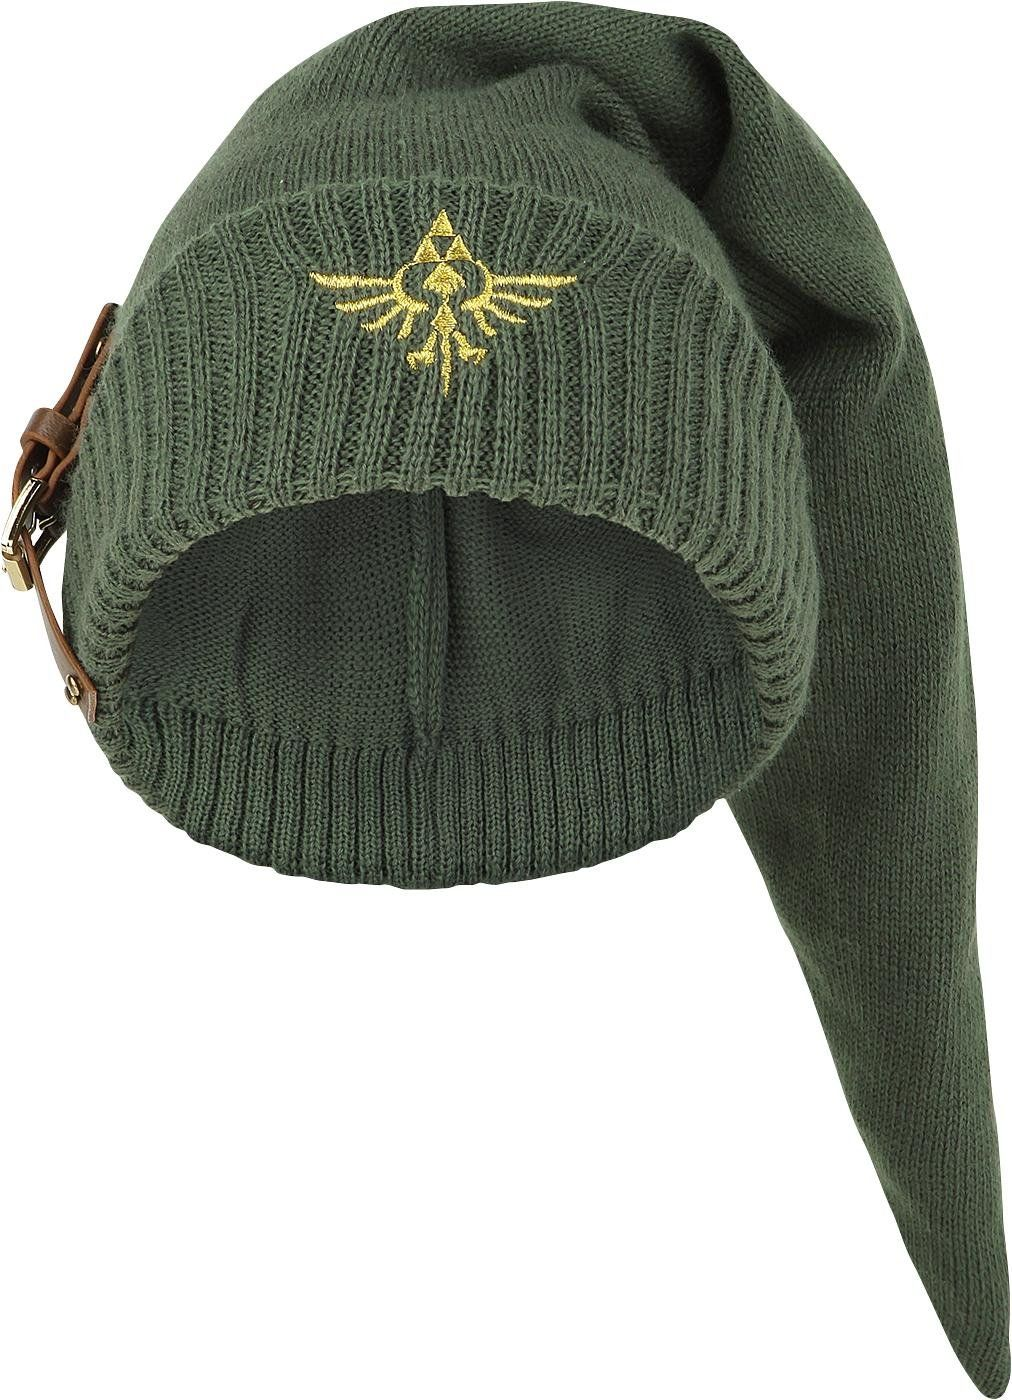 bbbc9f78a1c Legend of Zelda Knitted Link Beanie with Buckle ---- I NEED THIS ...